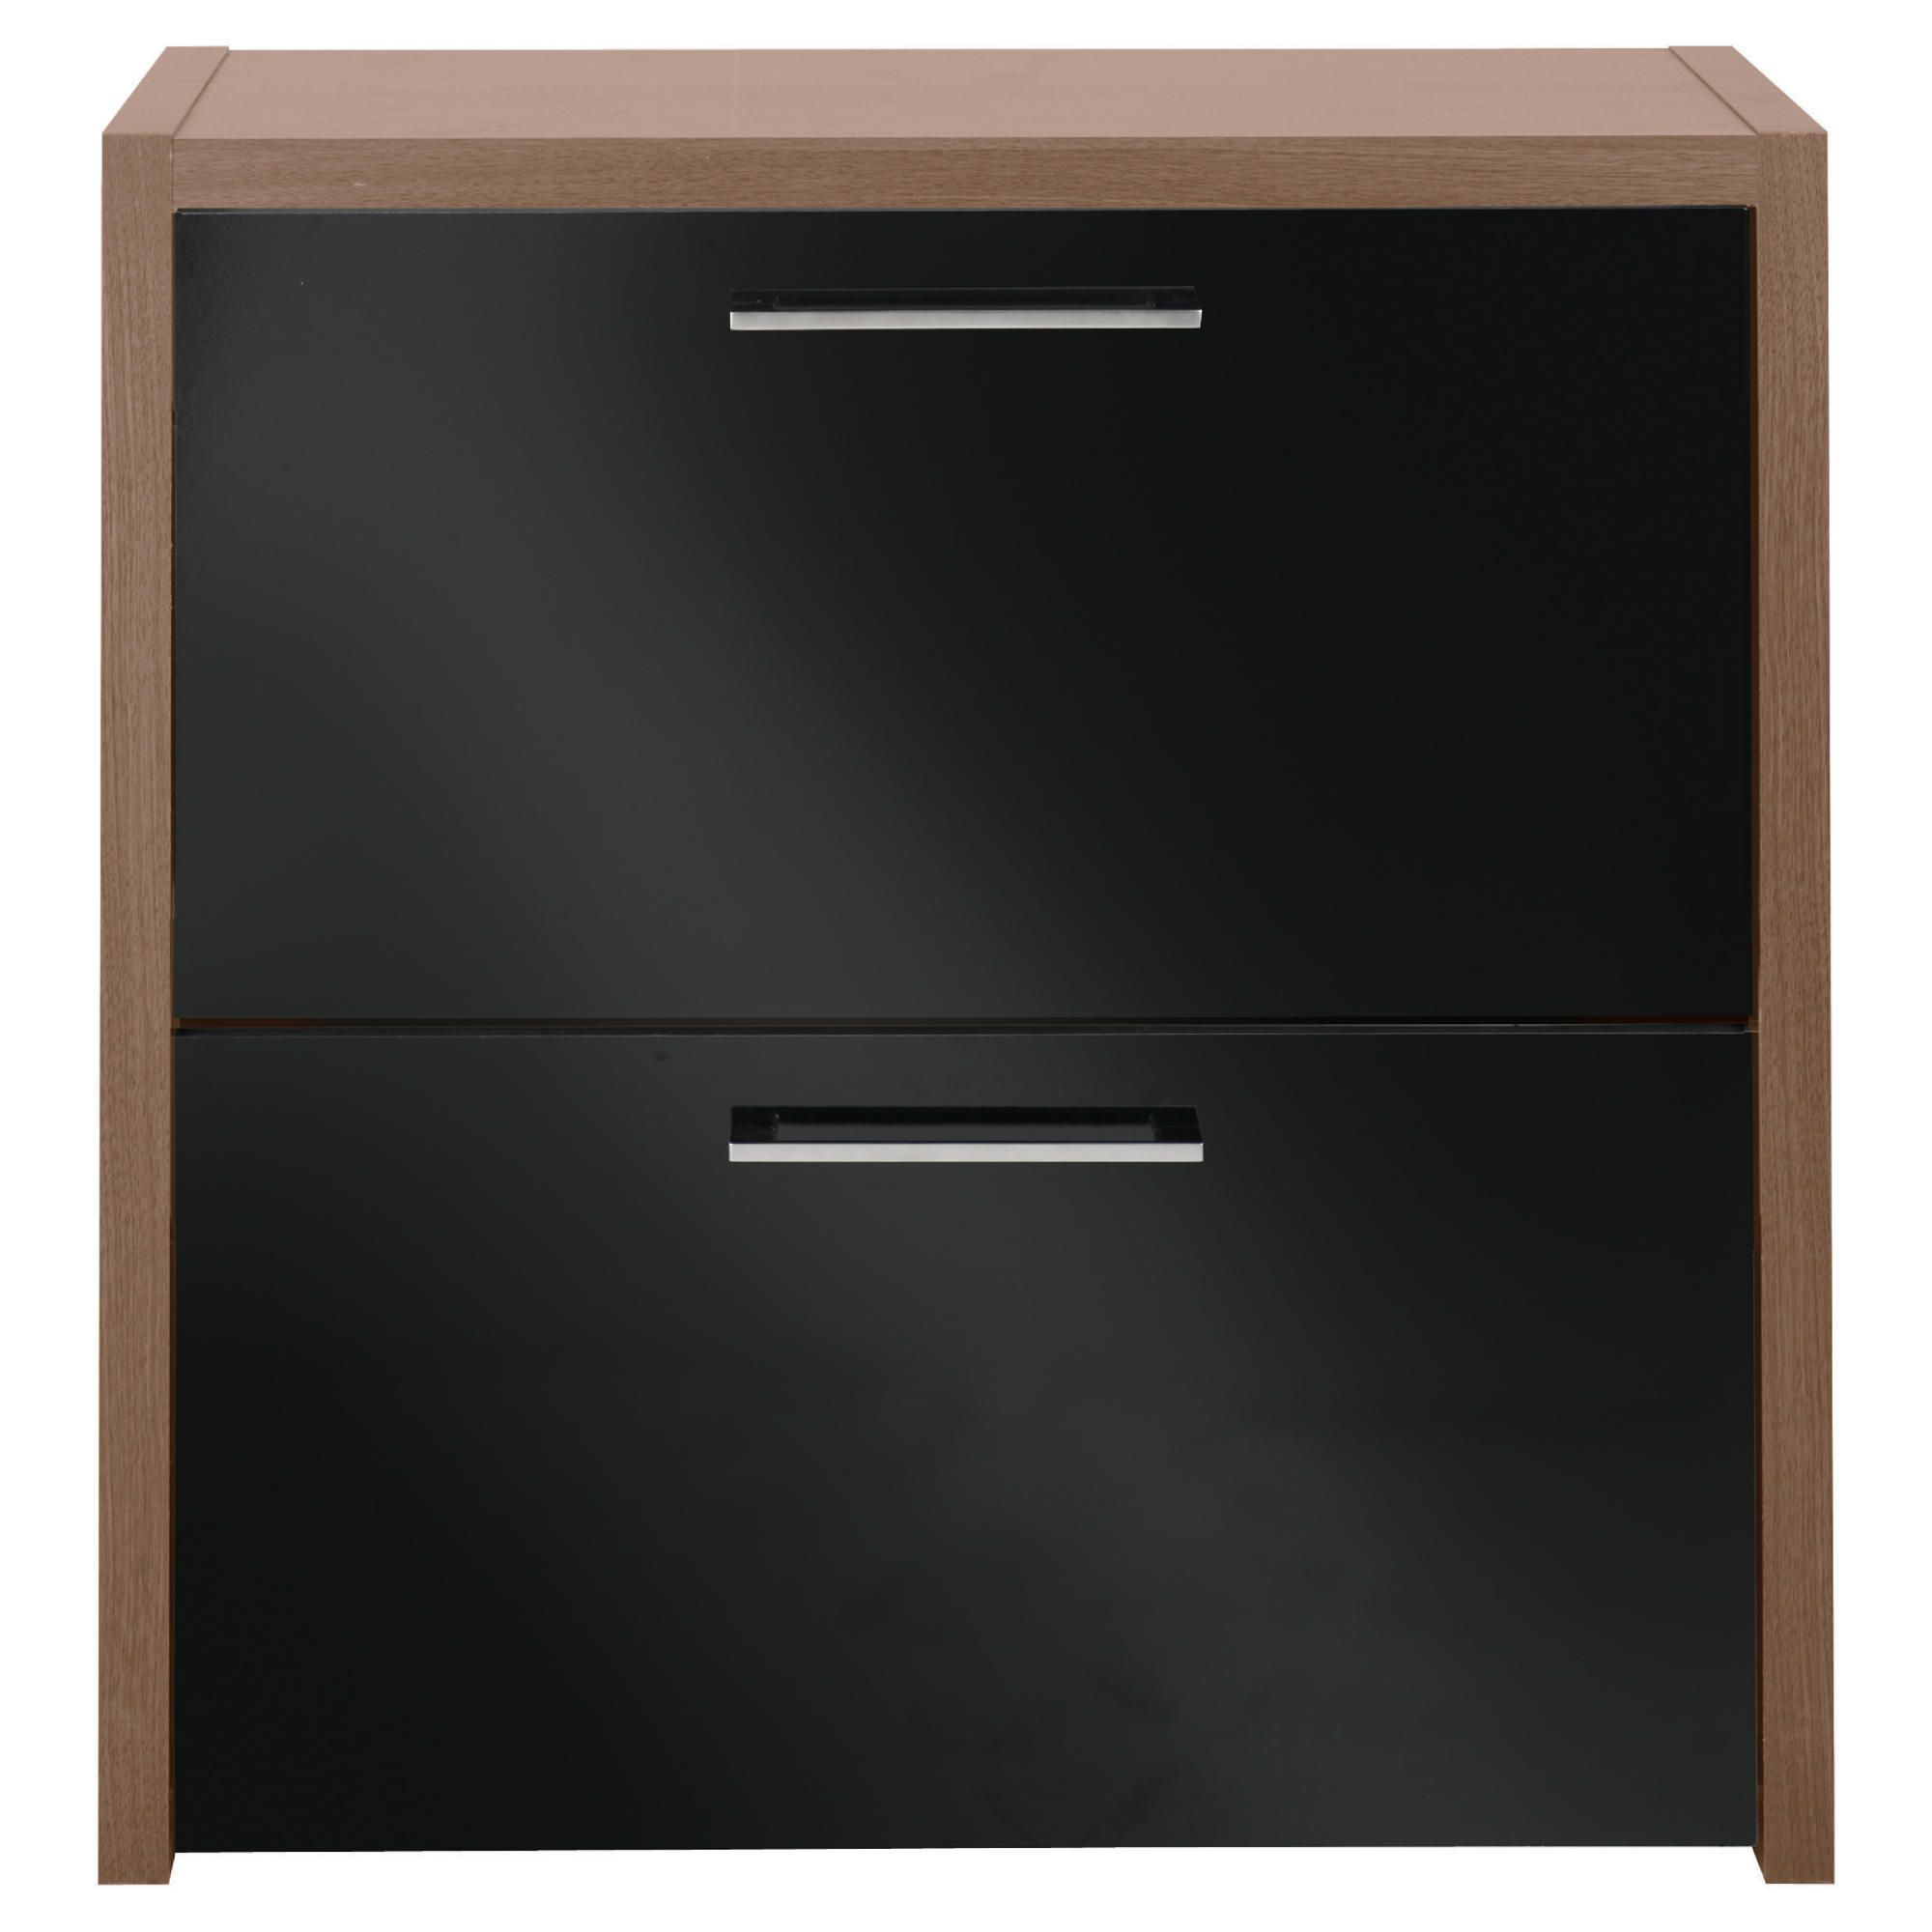 Tesco Manhattan Shoe Storage, Walnut Effect/ Black Gloss